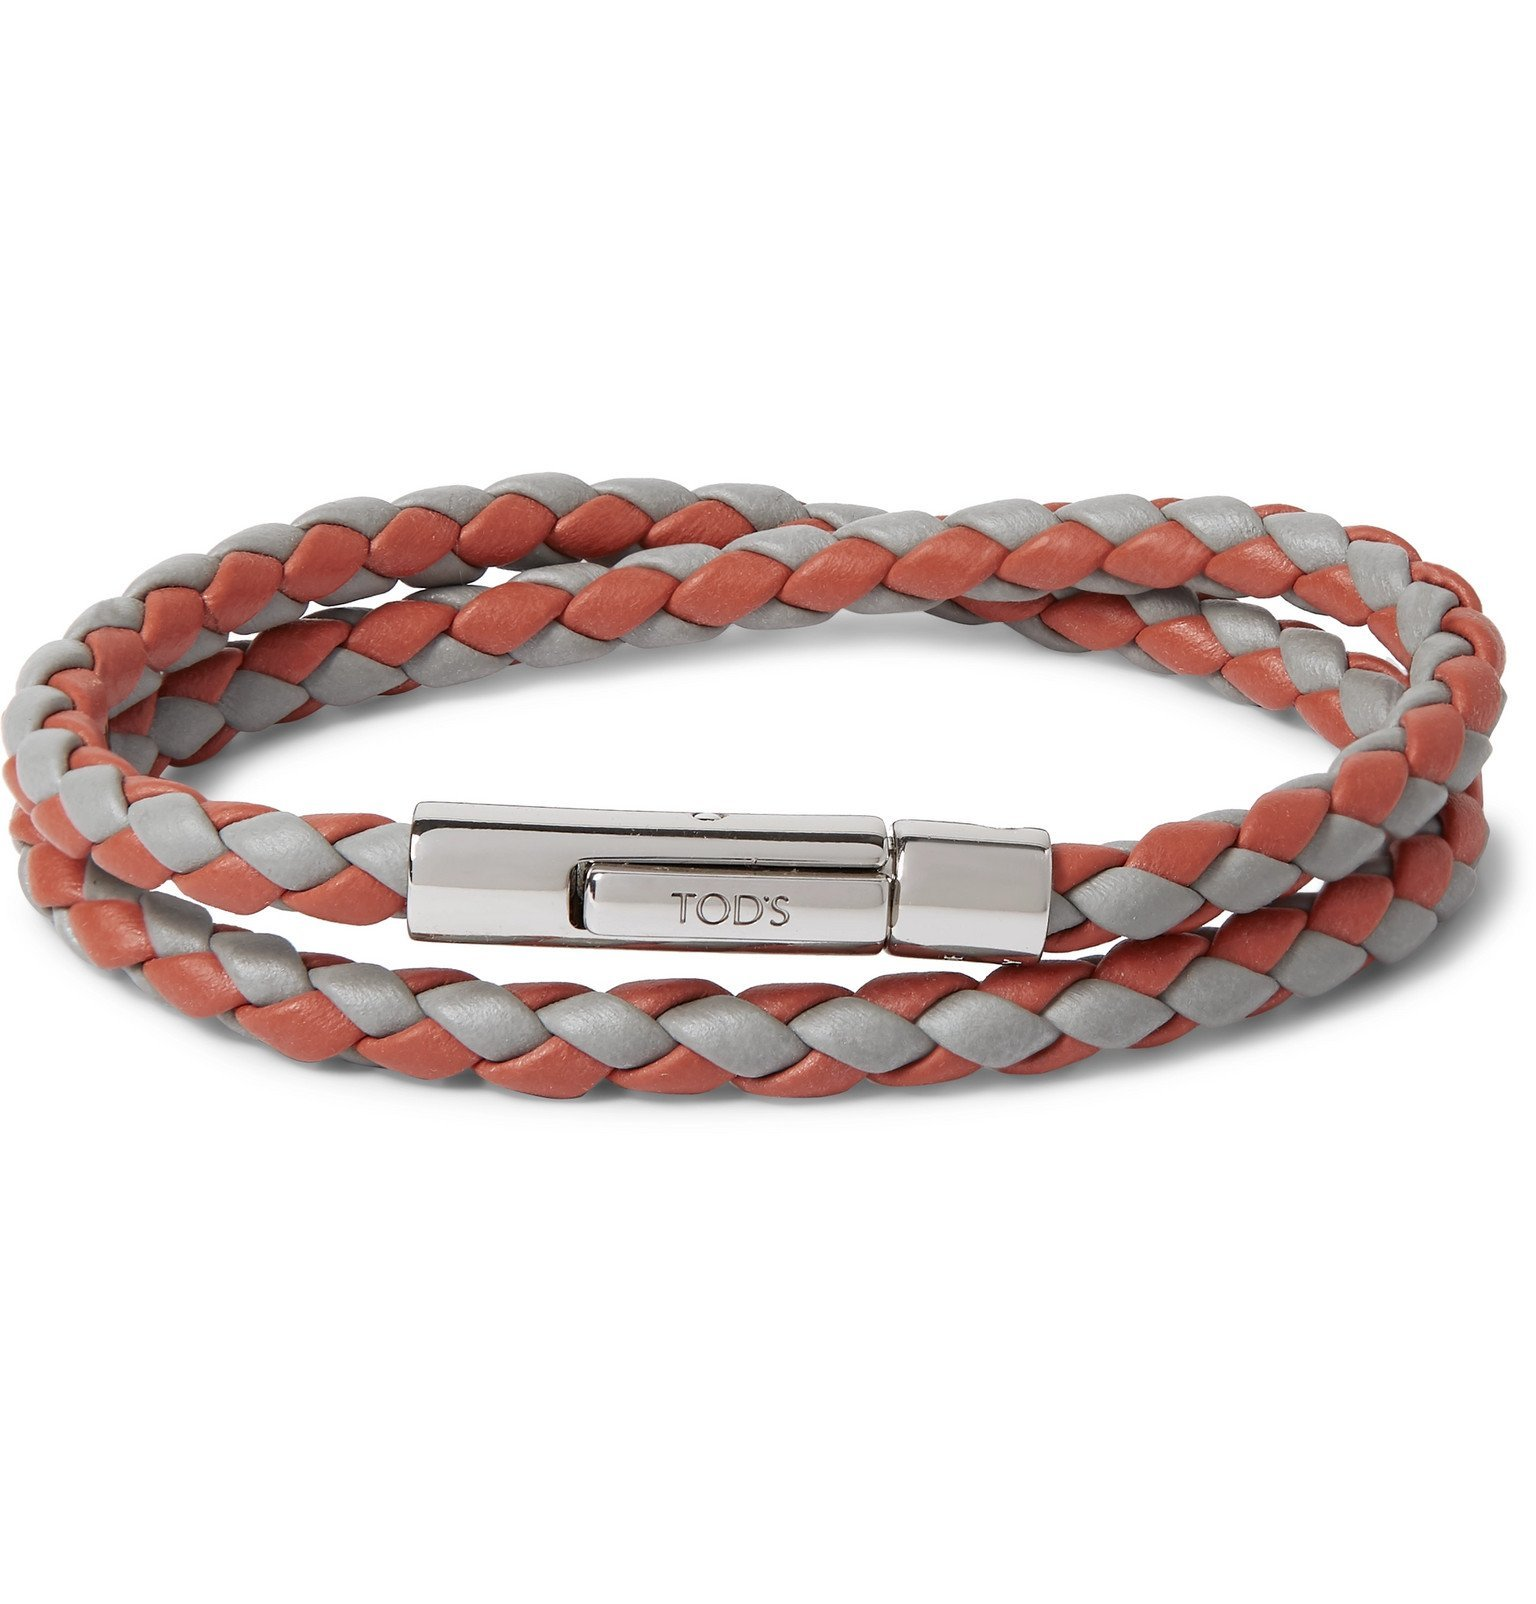 Tod's - Woven Leather and Silver-Tone Bracelet - Orange